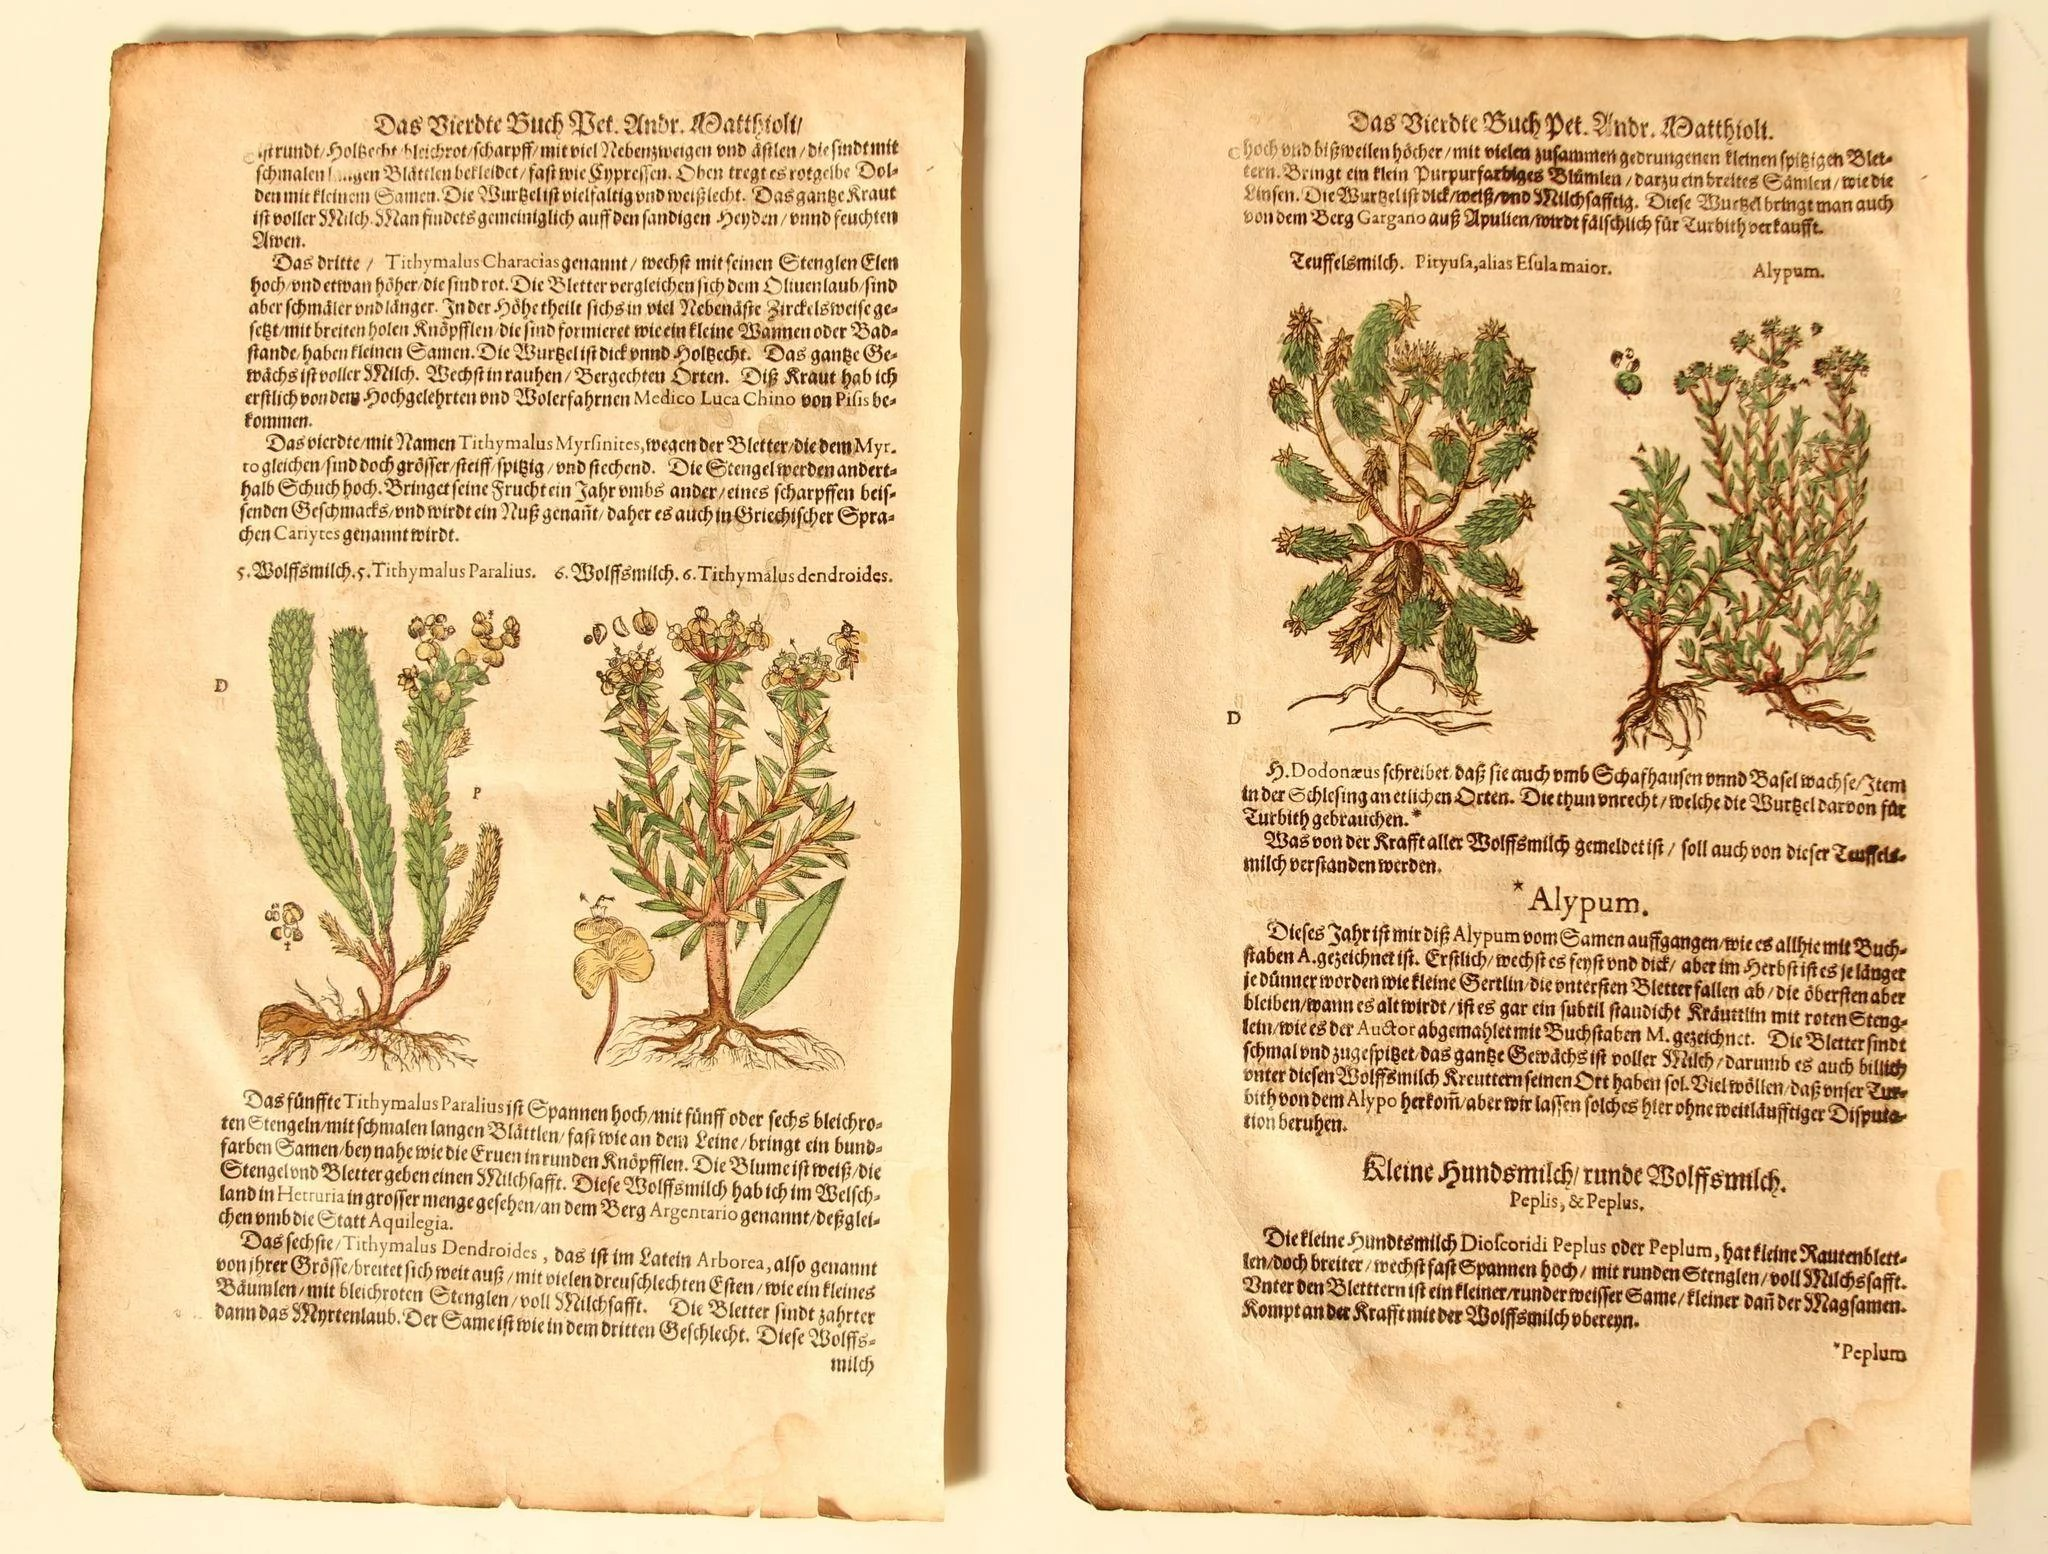 Buche Latein 16th Century Set Of Renaissance Prints Of Gopher Plant Alypum Tithymalus 1590 S Botanical Woodcut